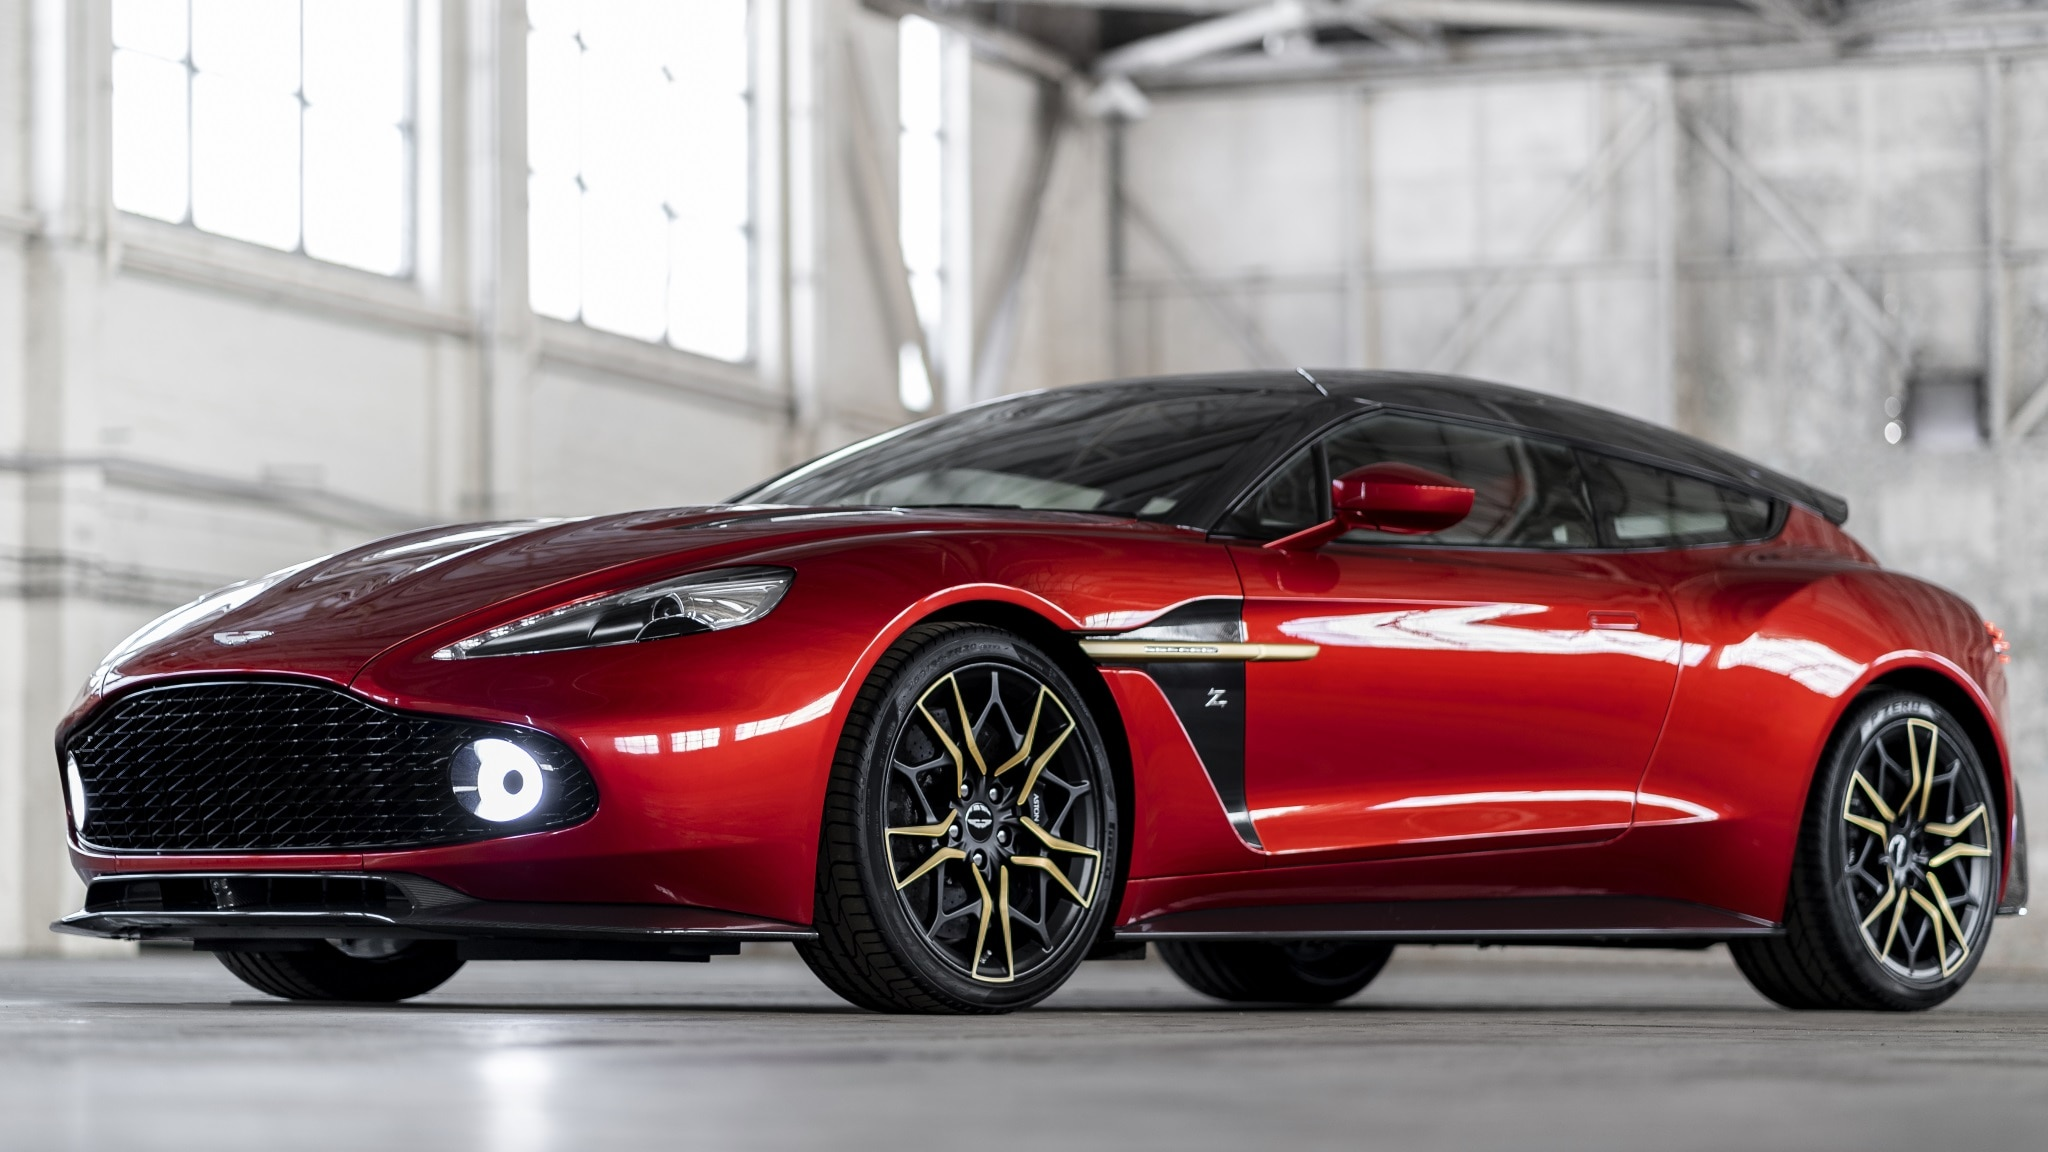 2017 Aston Martin Vanquish Zagato Shooting Brake Front Three Quarter